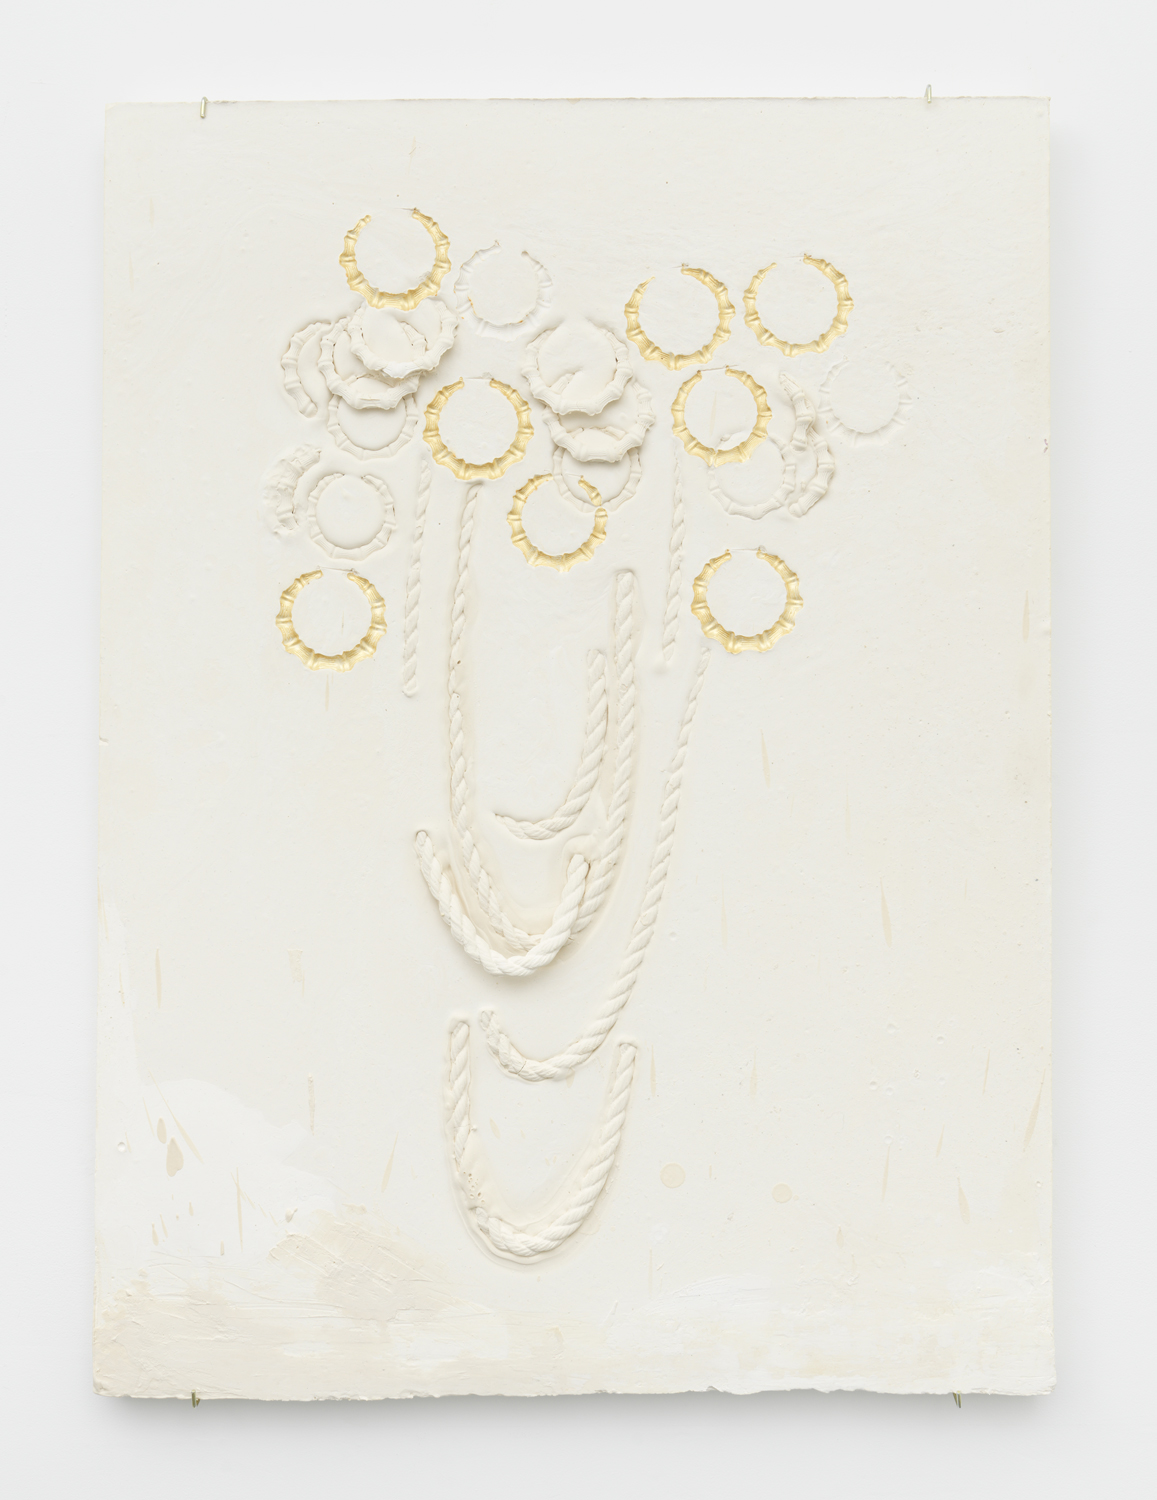 Composition with Rope Chains Overlapping Round Bamboo Earrings, Impressed with Gold  Plaster, foam and acrylic 46 x 34 x 3 inches, 116.84 x 86.36 x 7.62 cm 2019